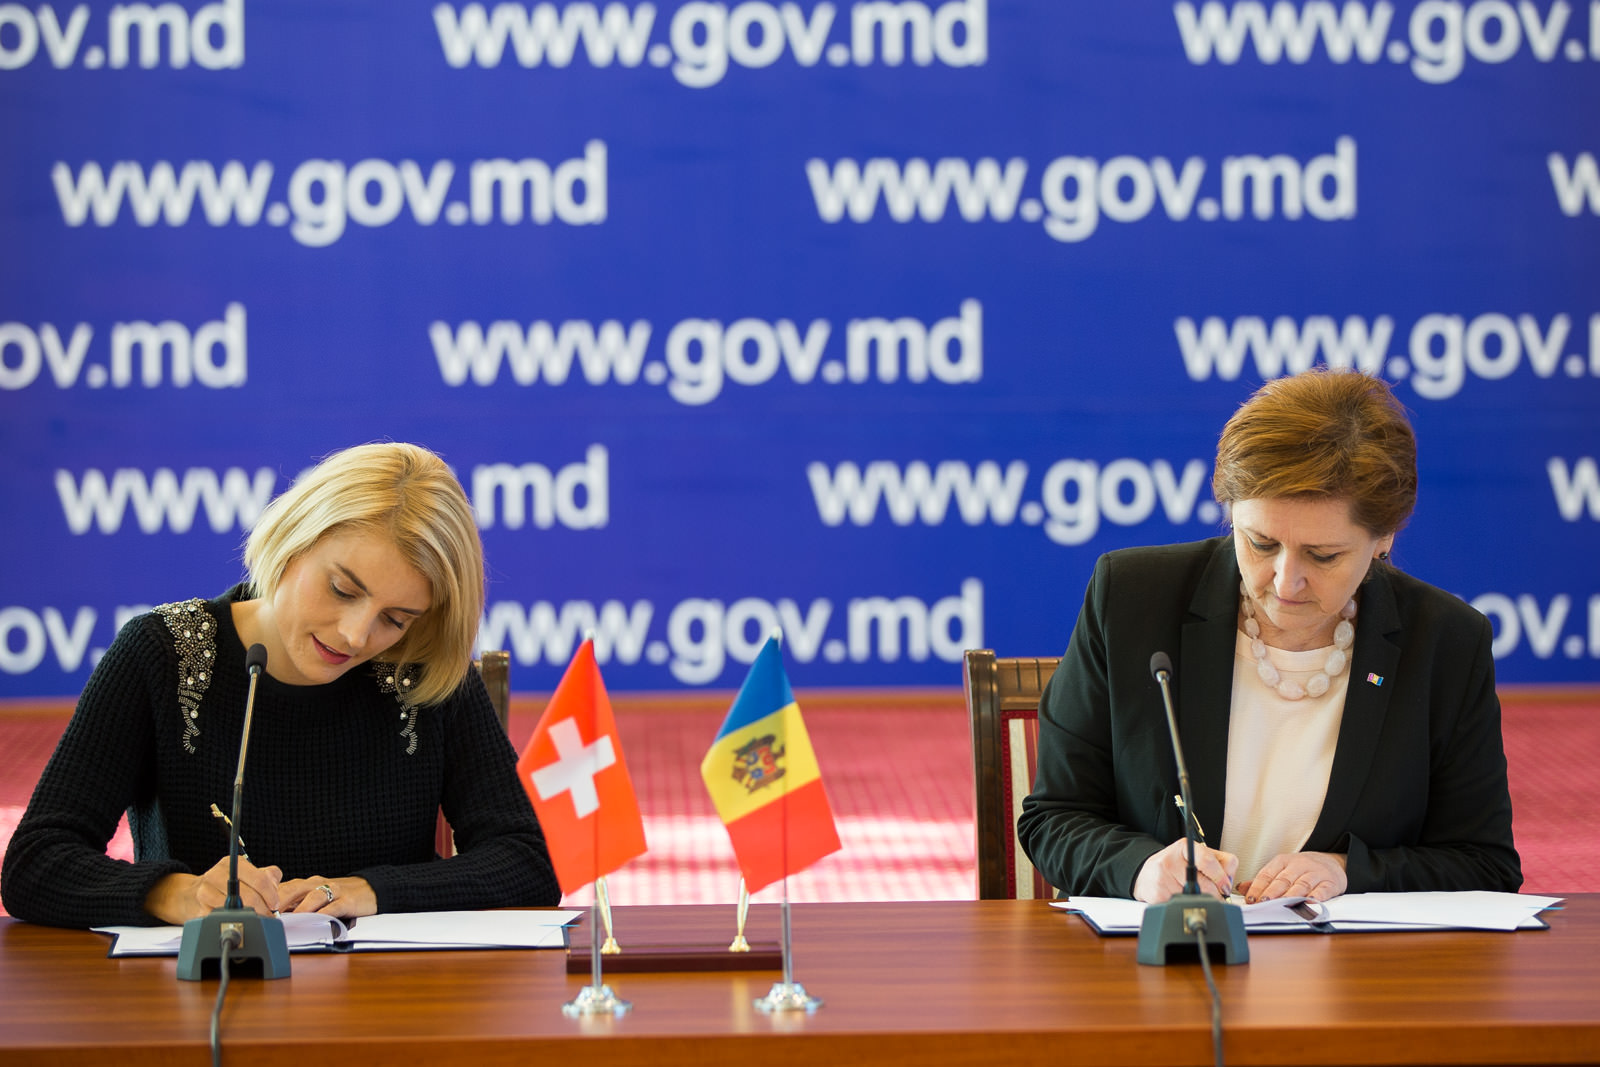 Secretary General Of Government Lilia Palii And Director The Swiss Cooperation Office In Moldova Simone Giger Today Signed An Agreement On Implementation